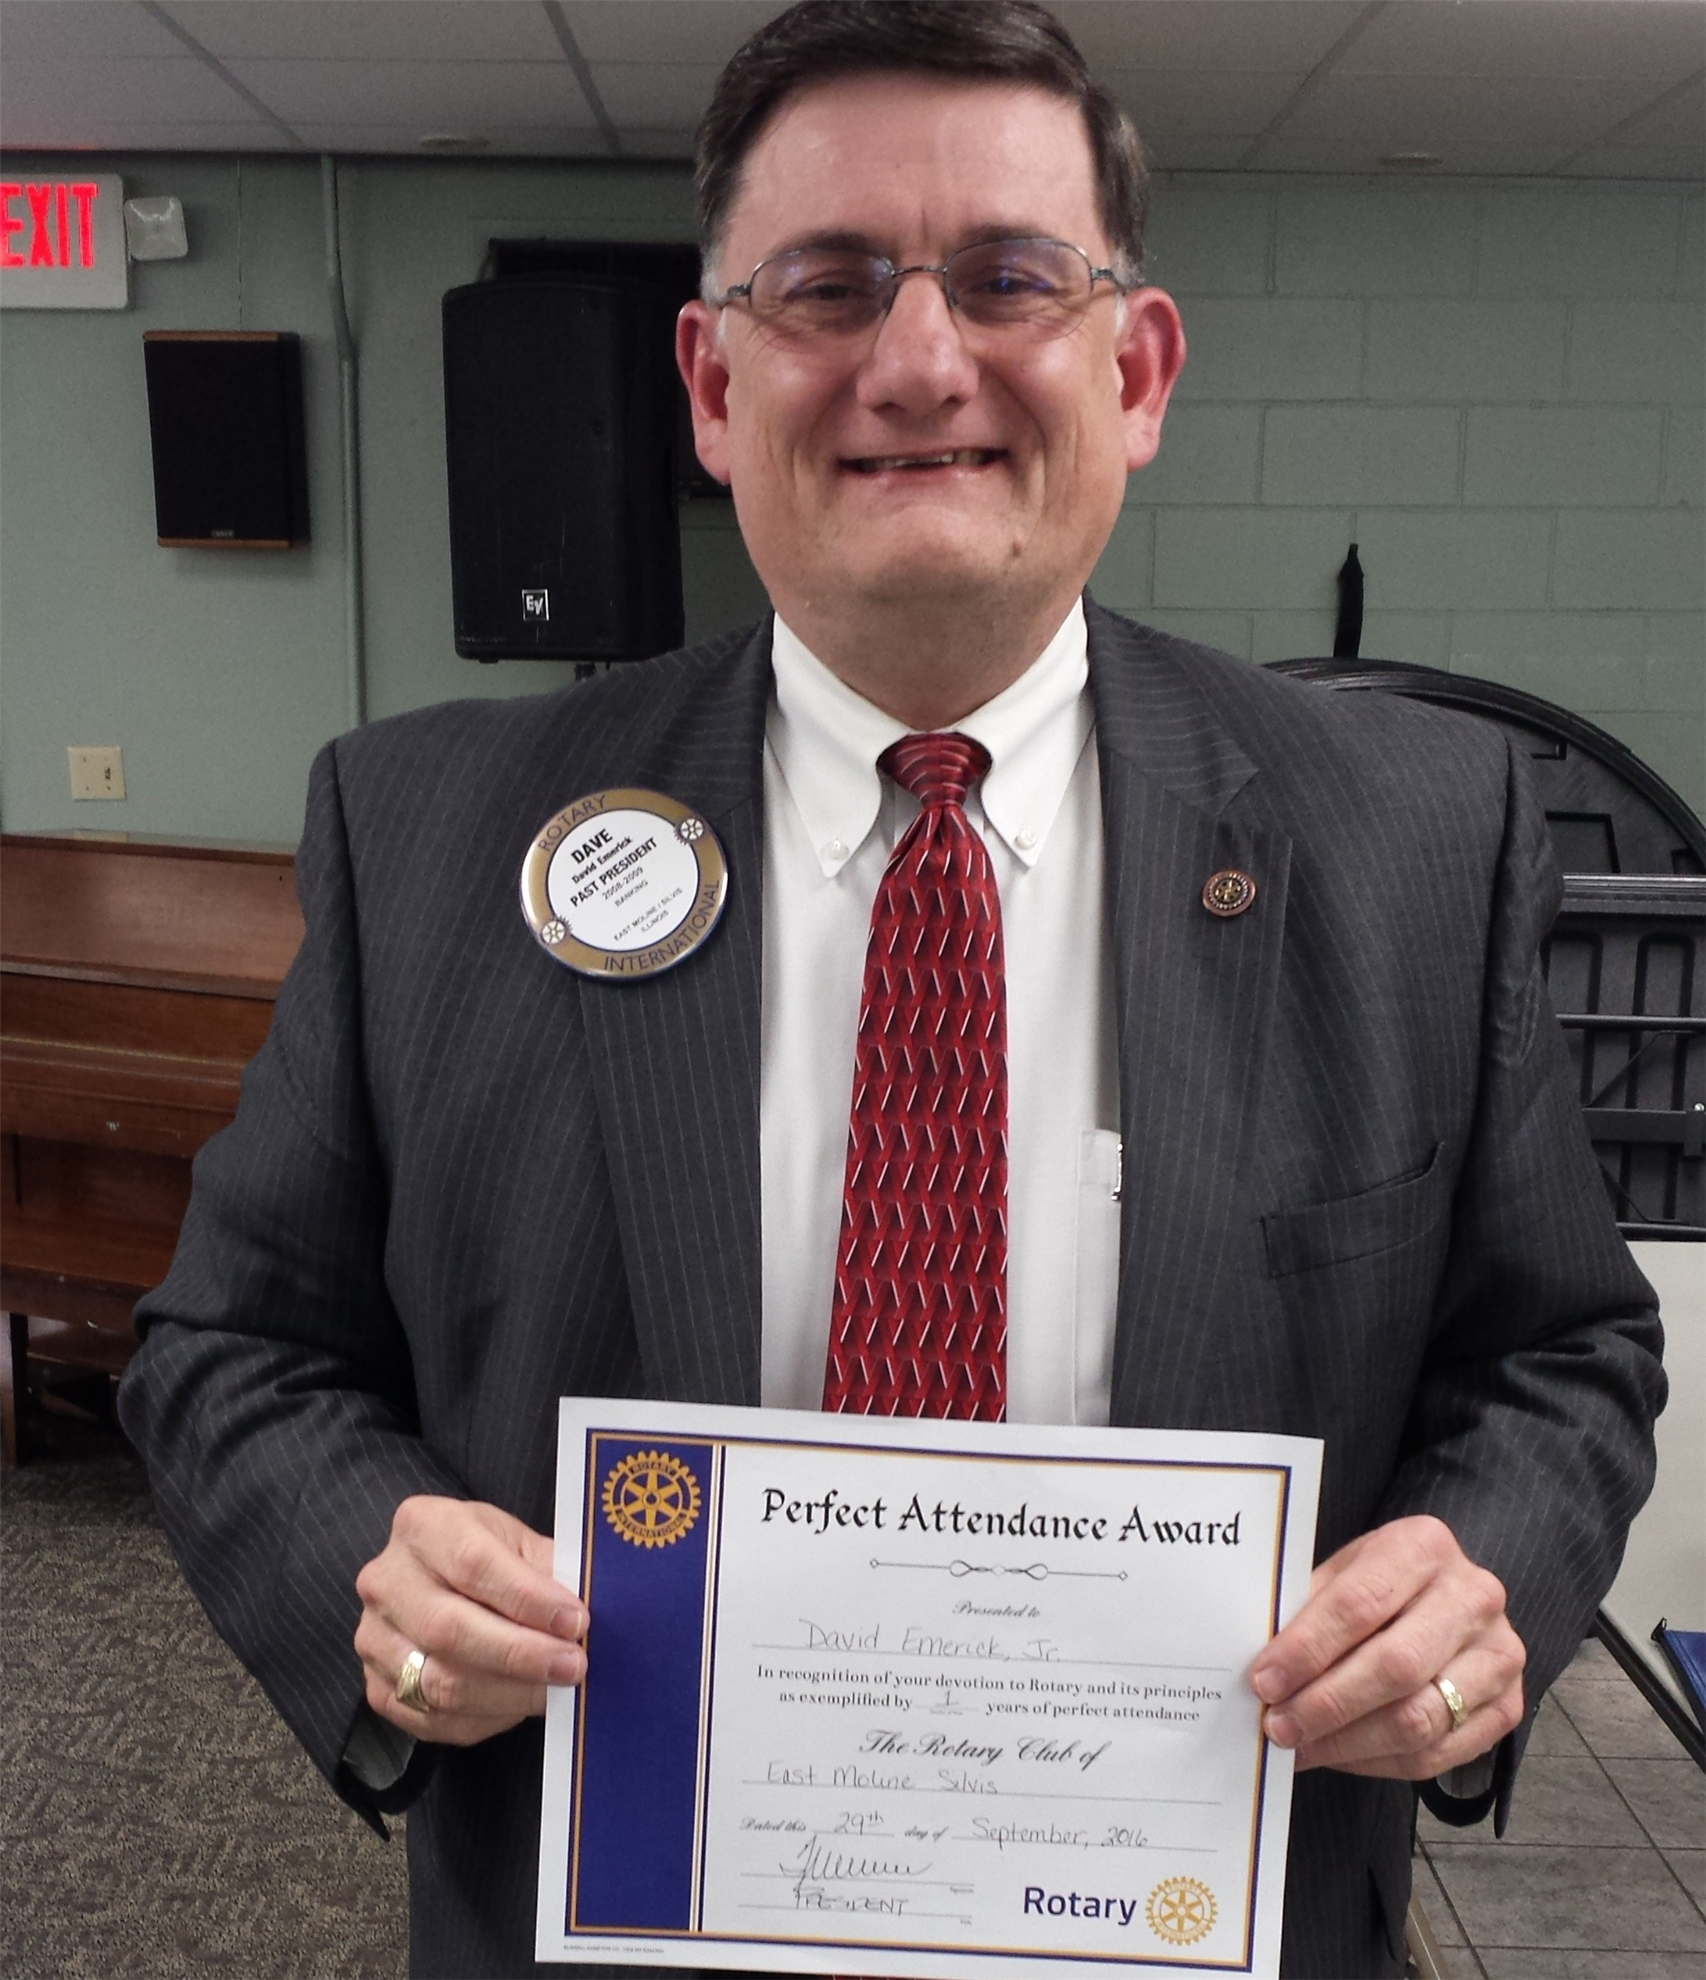 home page rotary club of east moline silvis congratulations to paul jones left who has had 53 years of consecutive perfect attendance he has accomplished this by ing other rotary clubs around